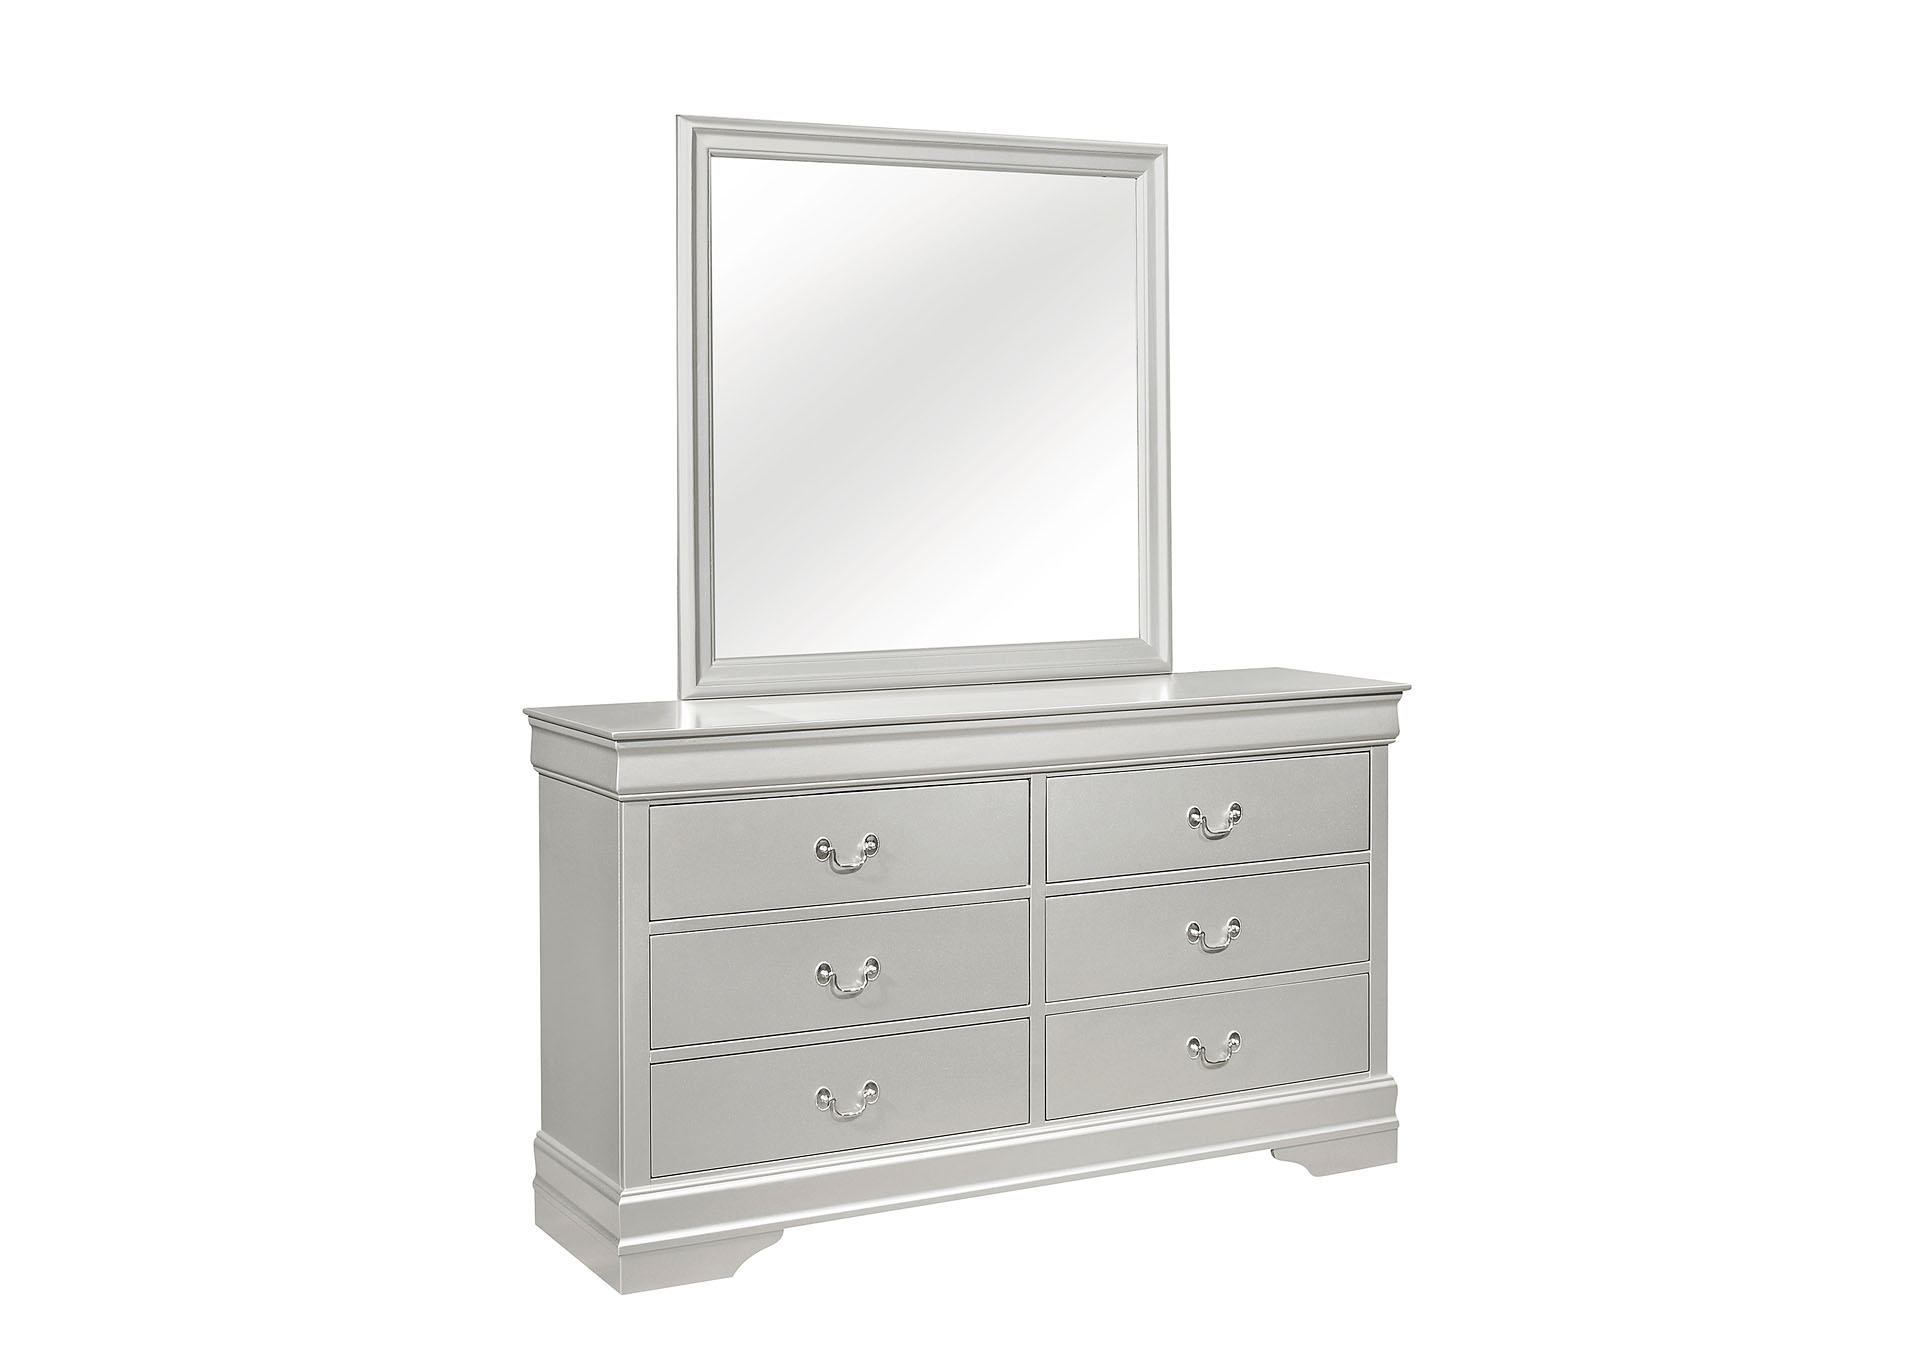 Marley Silver Dresser and Mirror,Global Furniture USA